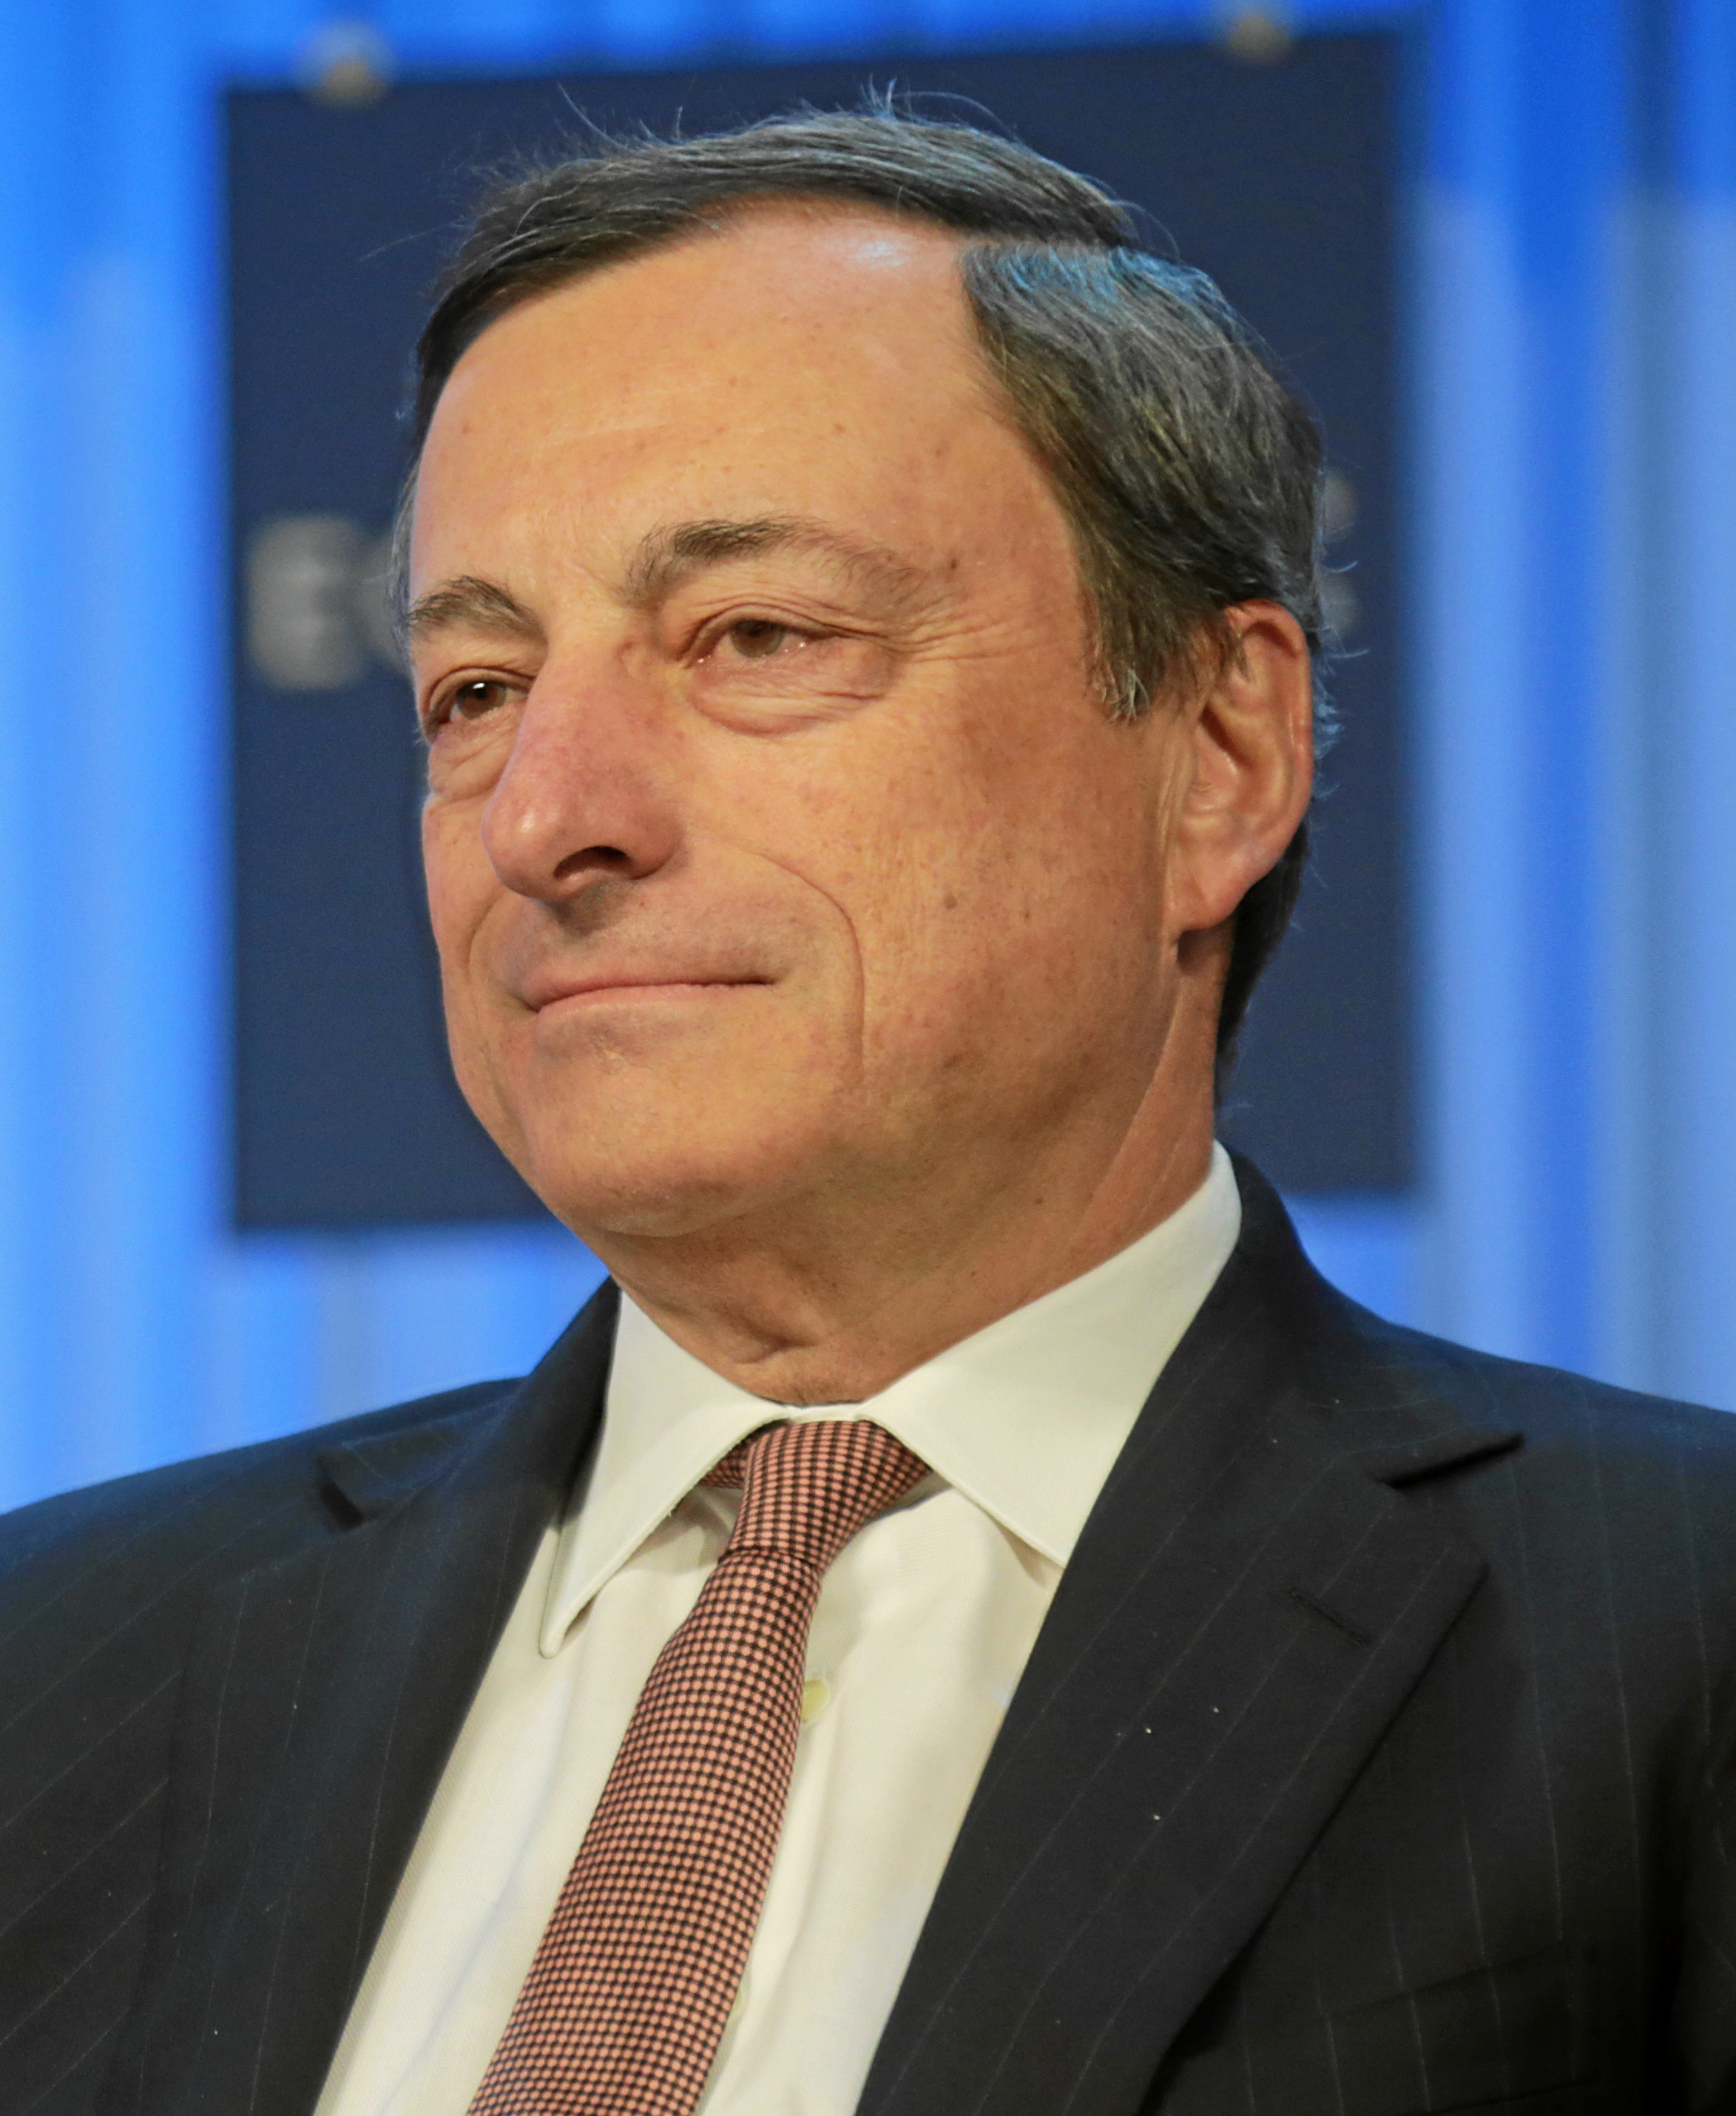 The 70-year old son of father (?) and mother(?), 170 cm tall Mario Draghi in 2017 photo